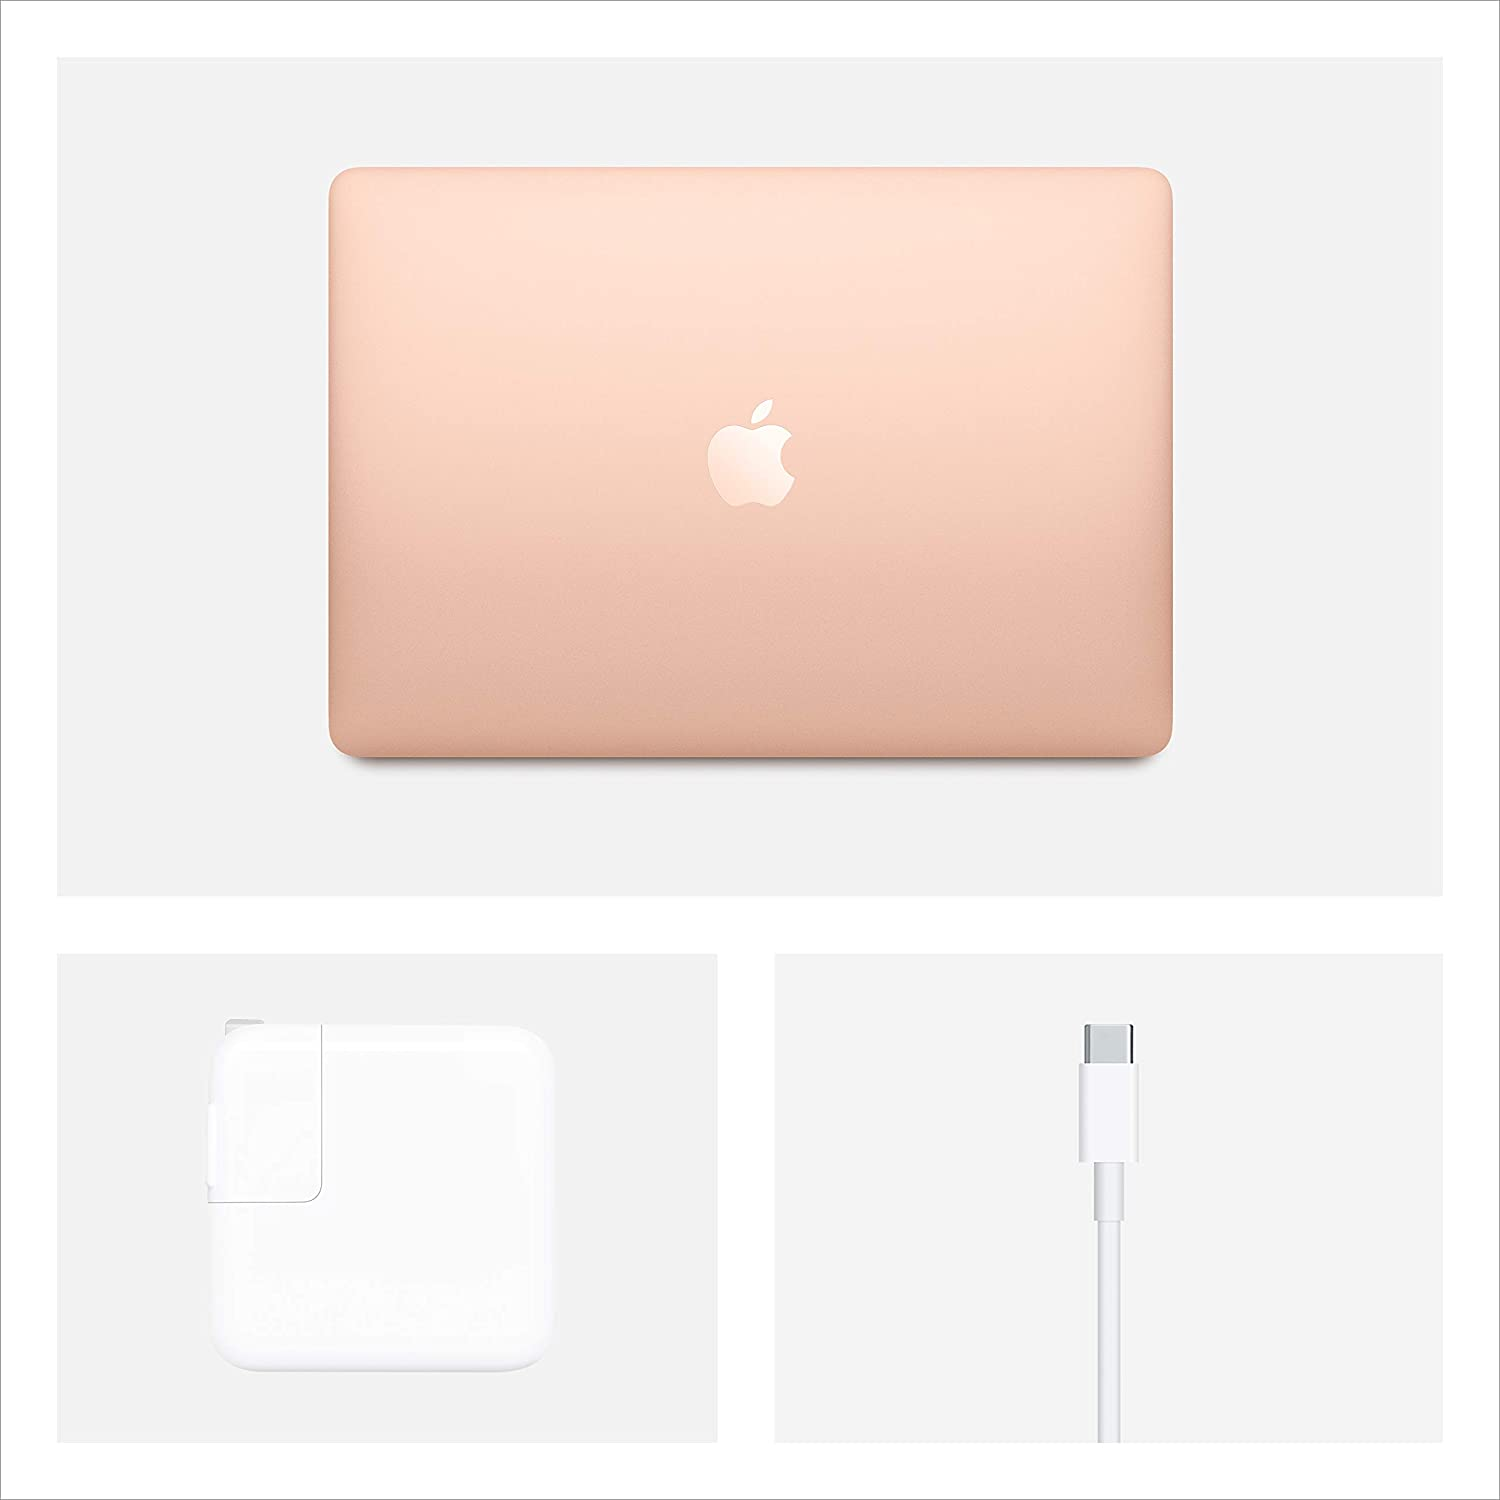 Apple MacBook Air 2020 Model - 13